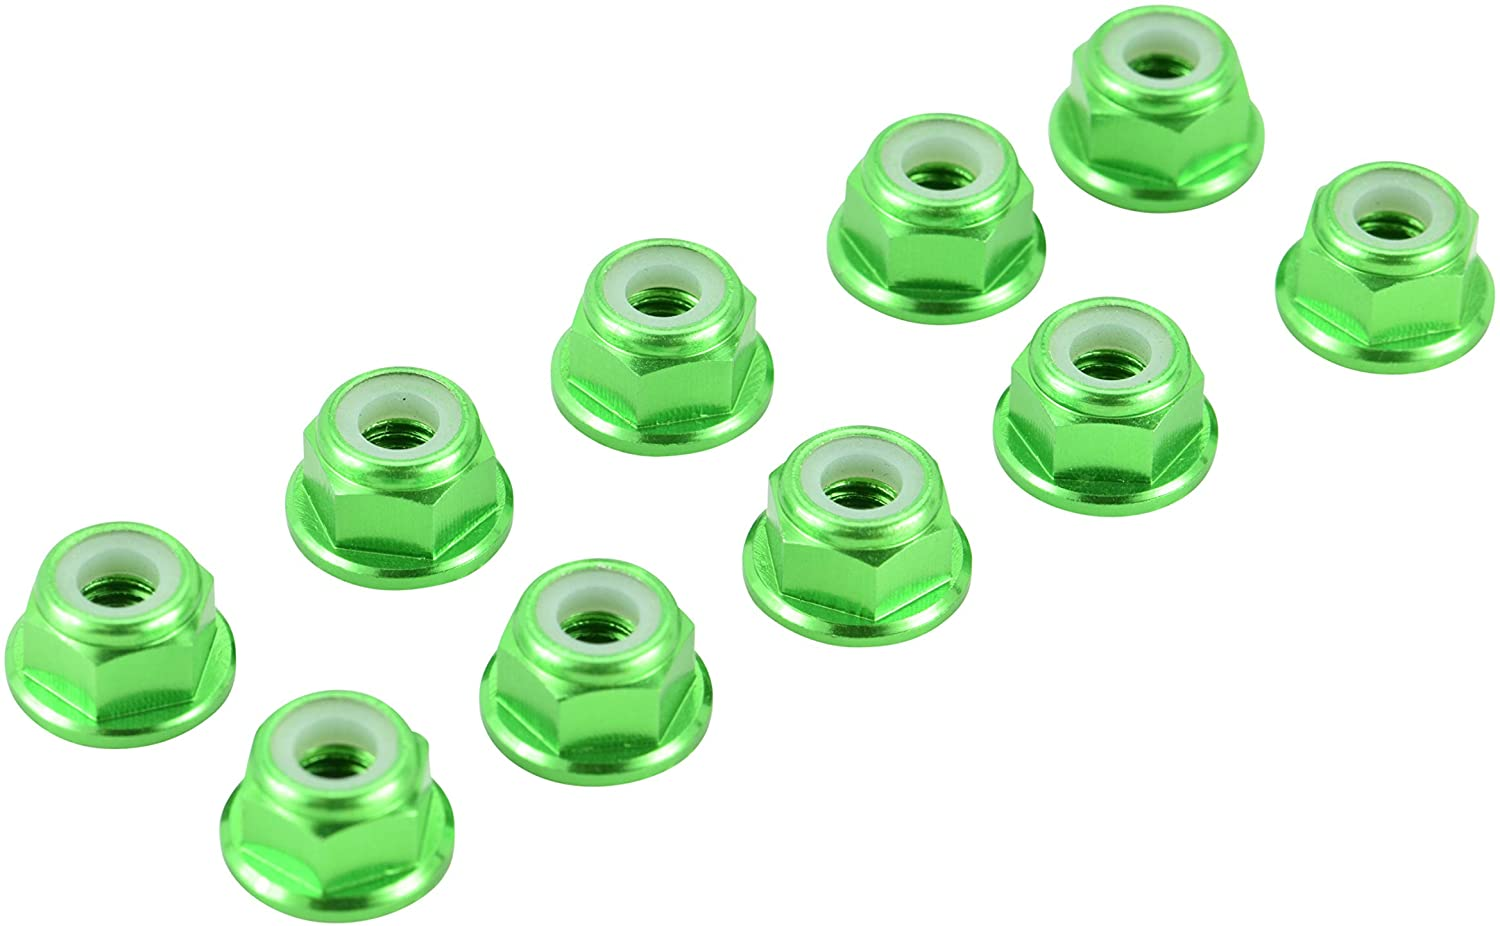 Apex RC Products 4mm Serrated Aluminum Nylon Wheel Nuts Set - 6 Colors to Choose from